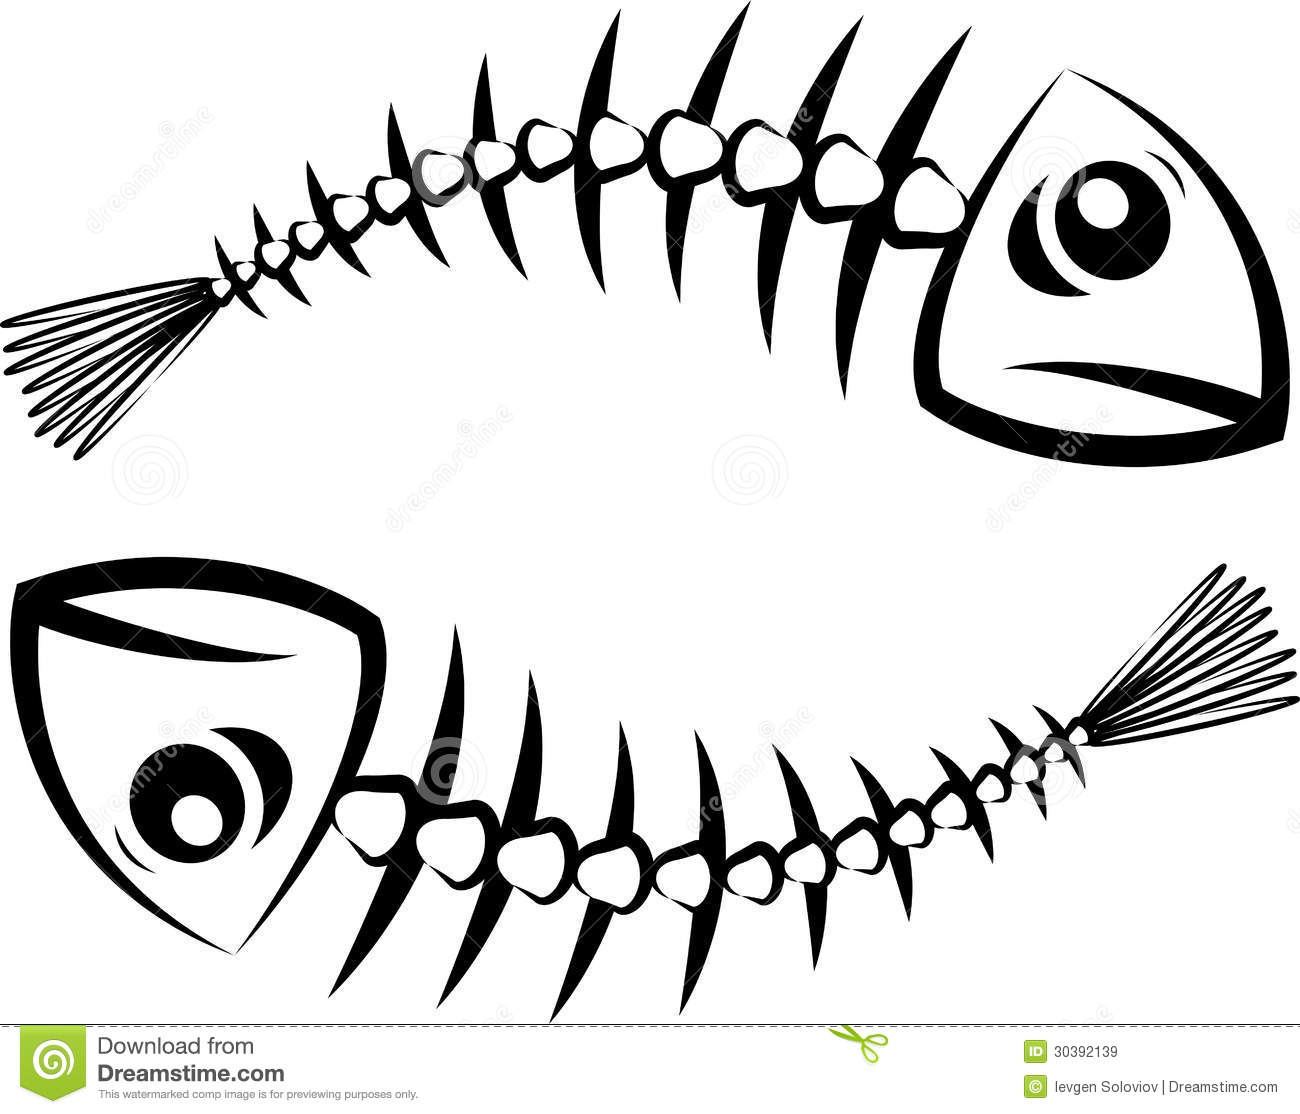 fish silhouette royalty free stock images image 30392139